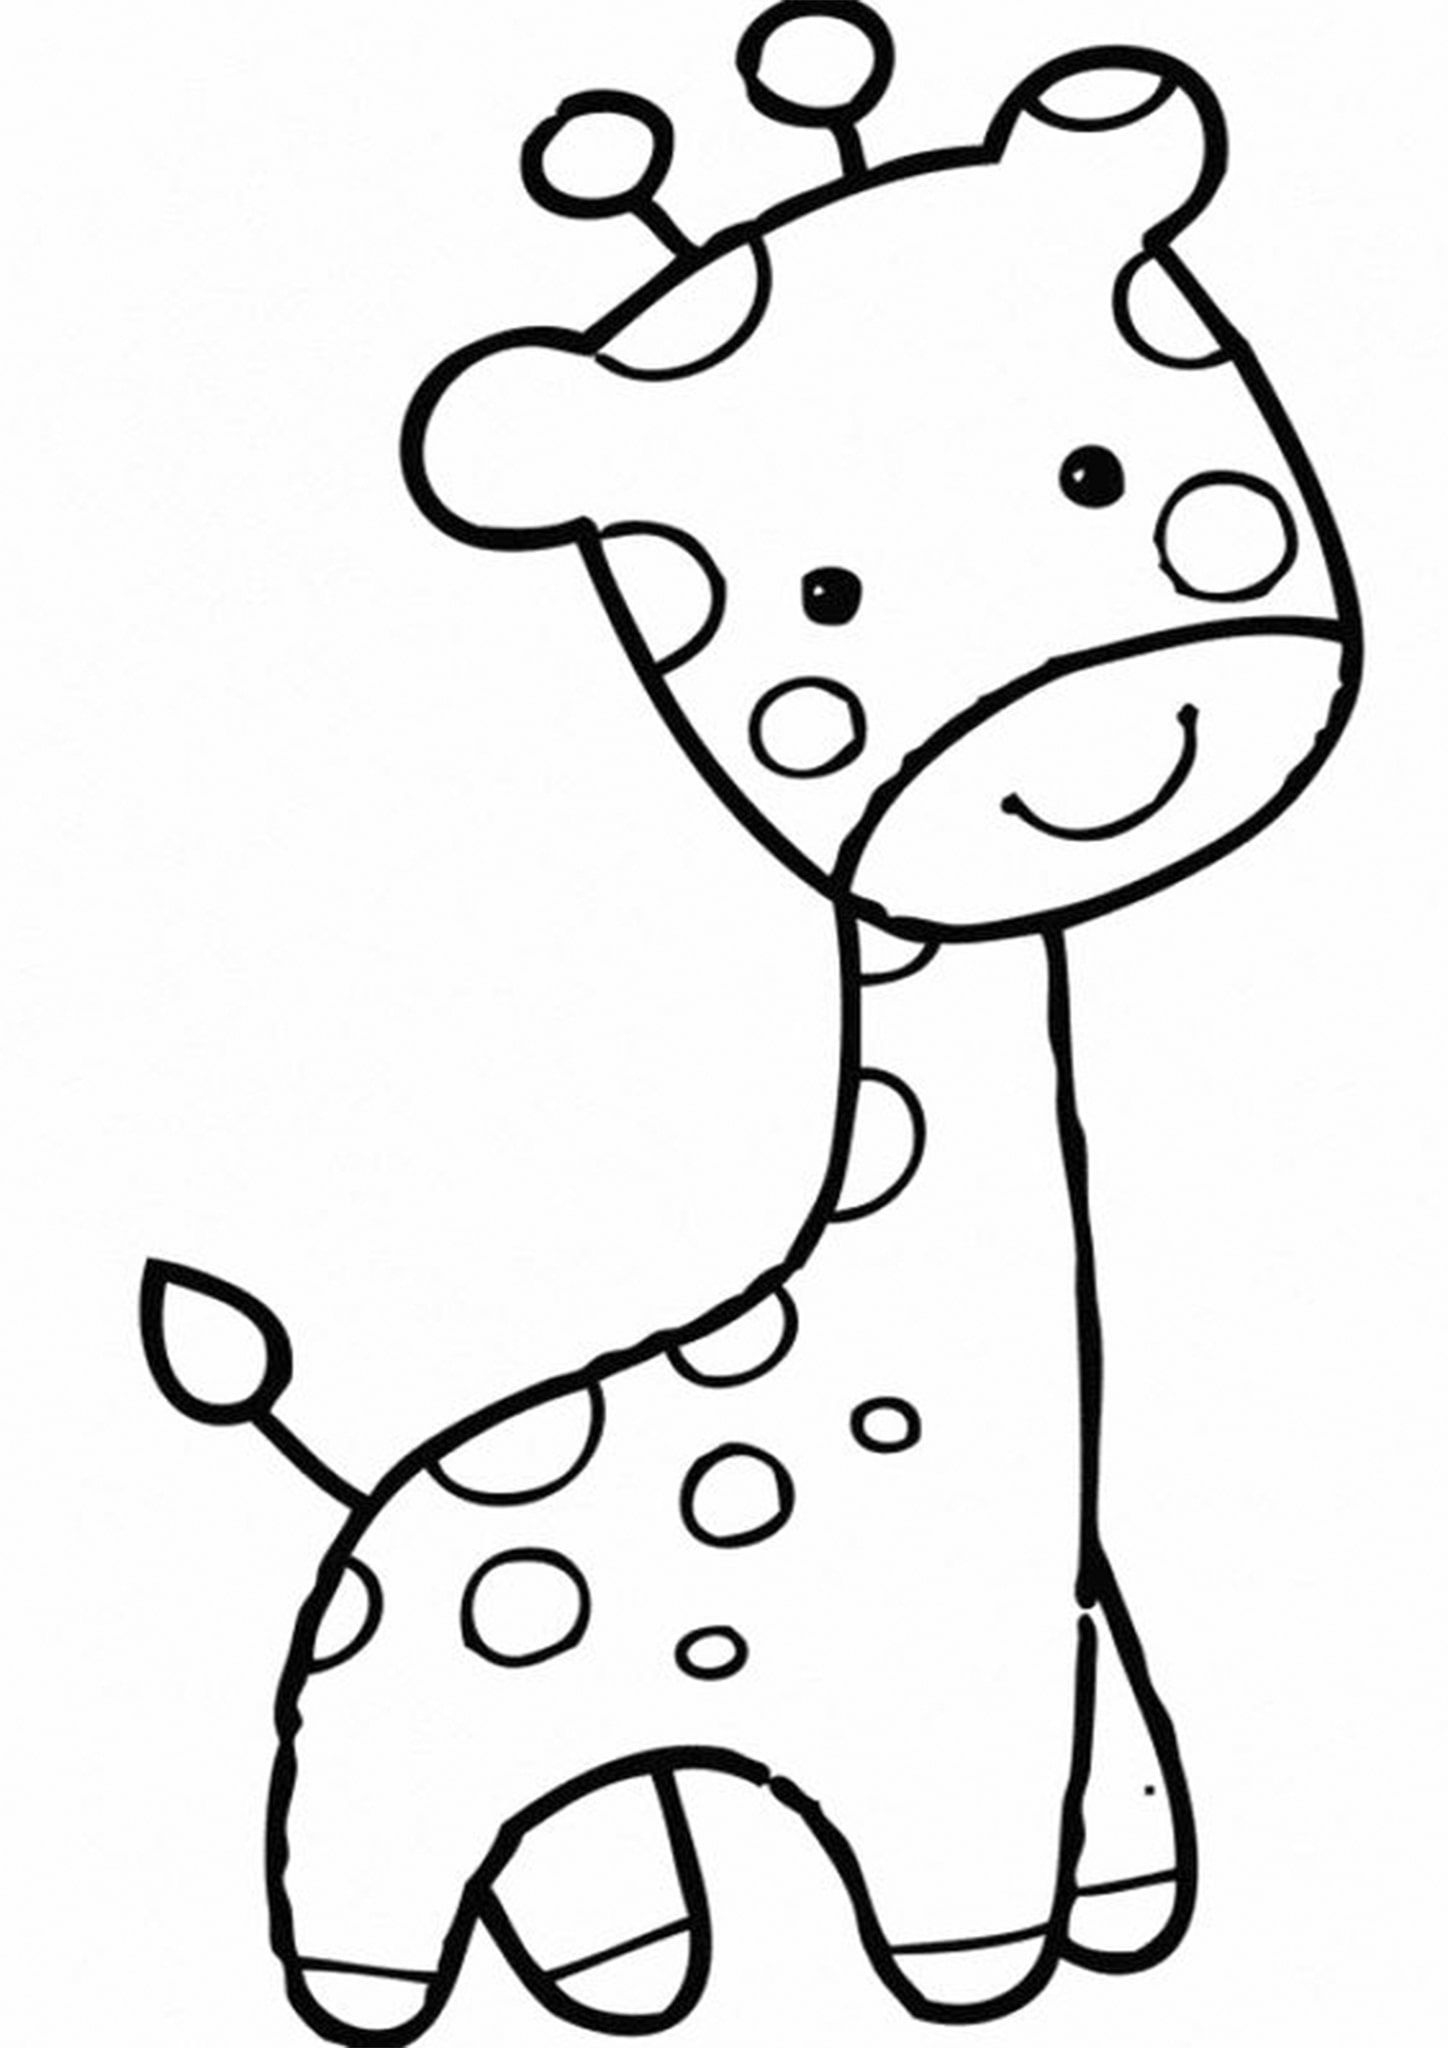 Free Easy To Print Baby Animal Coloring Pages Giraffe Coloring Pages Animal Coloring Pages Easy Animal Drawings [ 2048 x 1448 Pixel ]